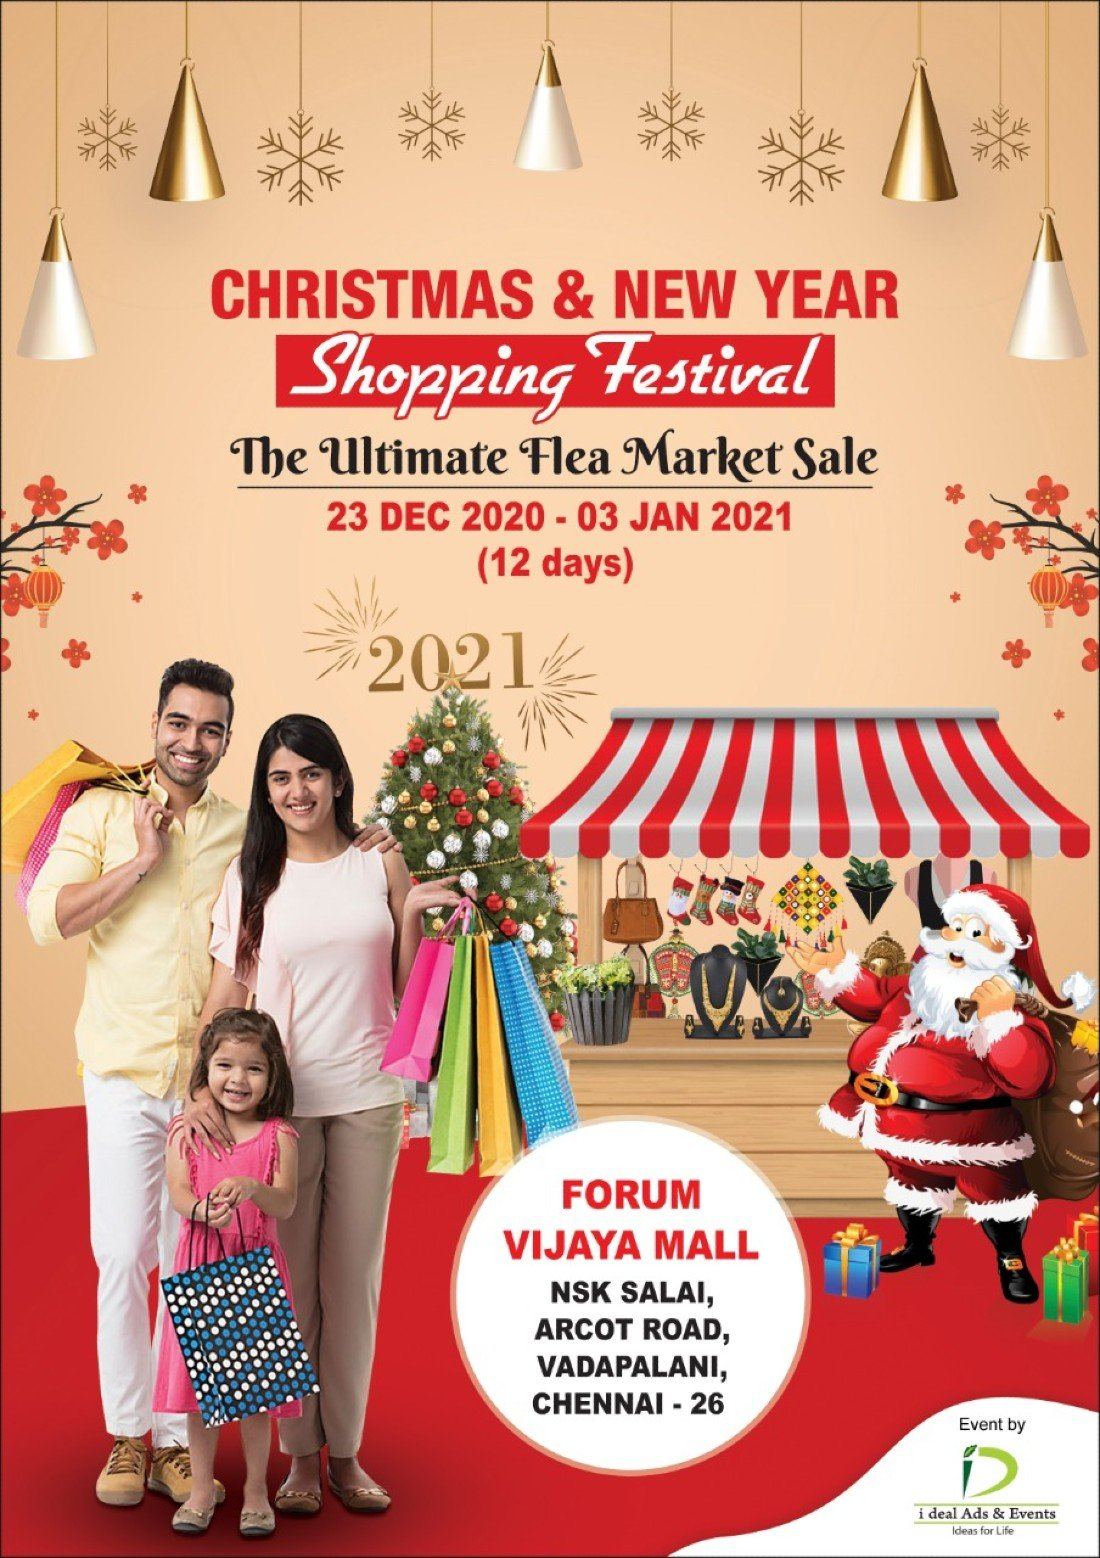 2021 Christmas Events Christmas New Year Shopping Festival Forum Vijaya Mall Chennai December 23 To January 3 Allevents In